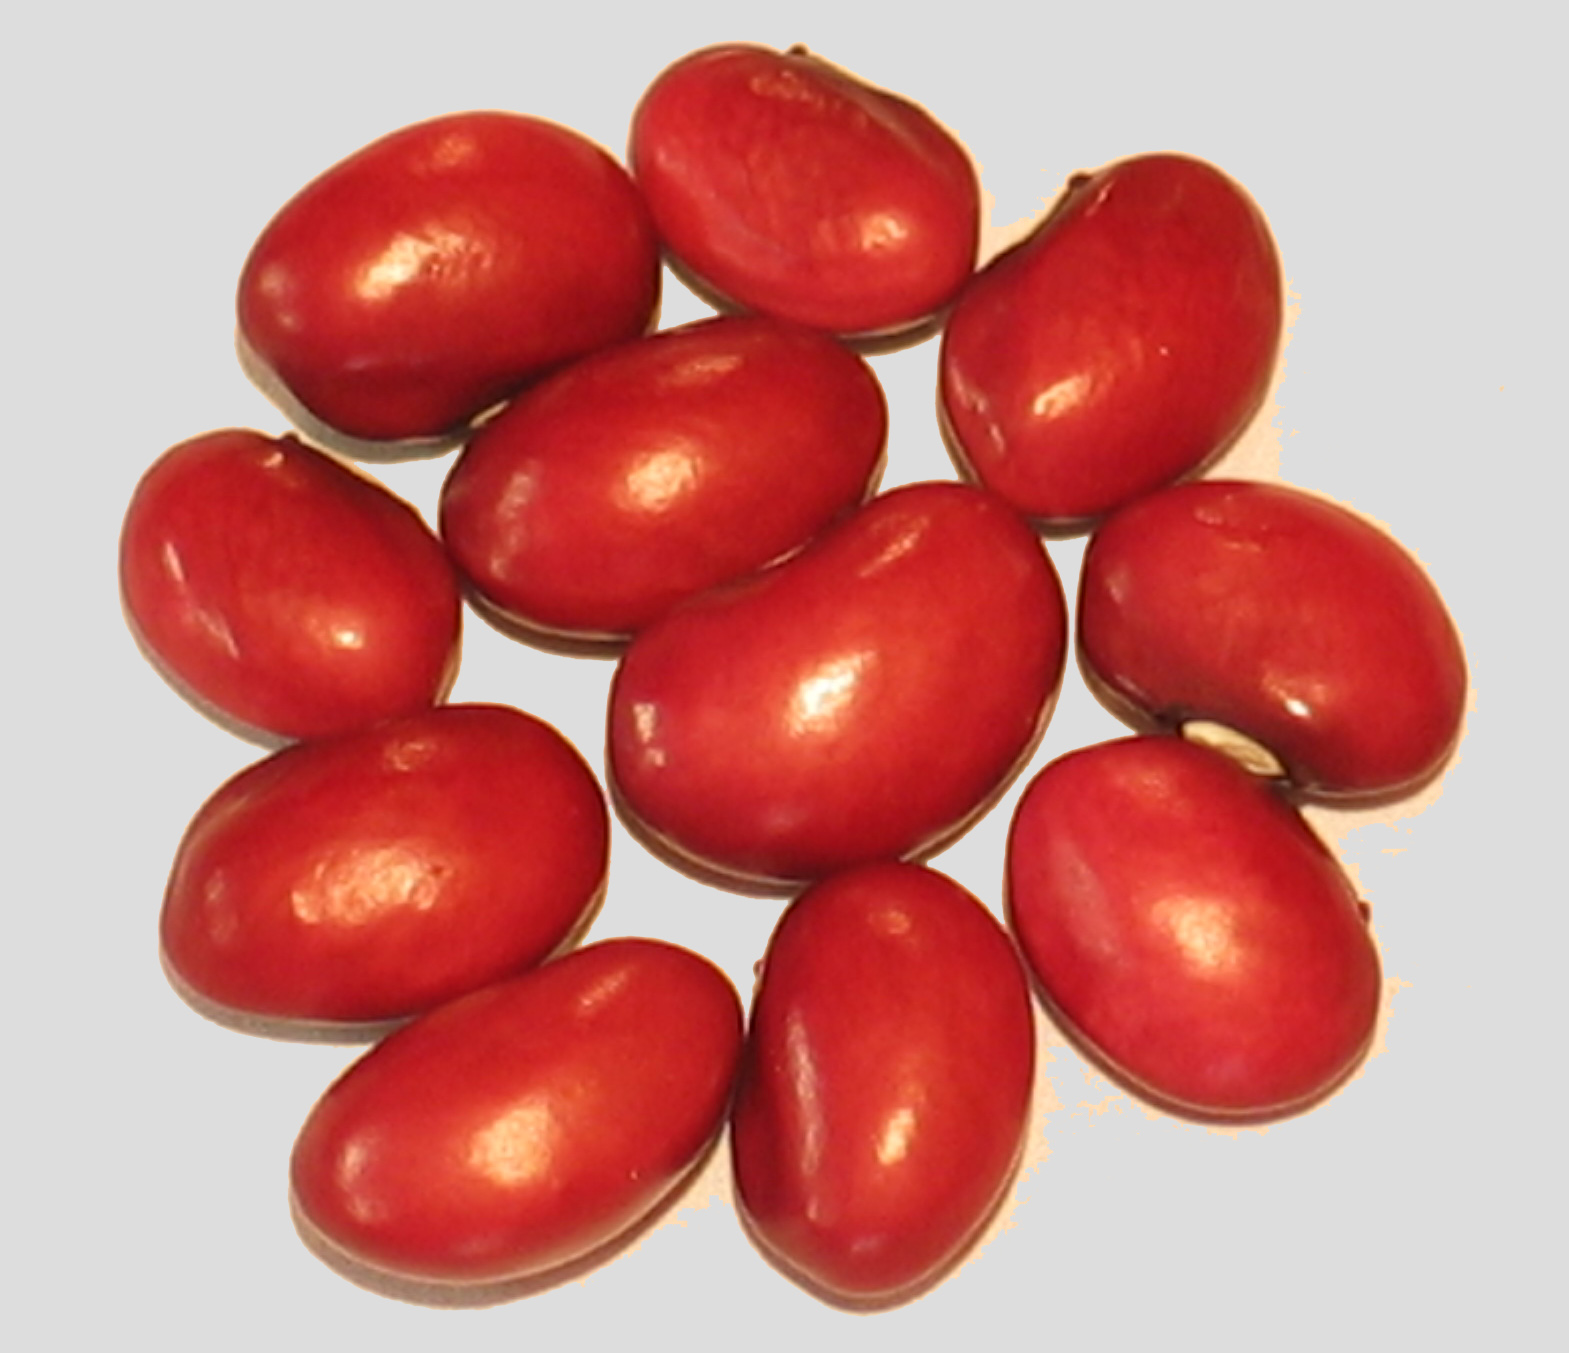 image of Pink Poded Burgundy Bolitas beans